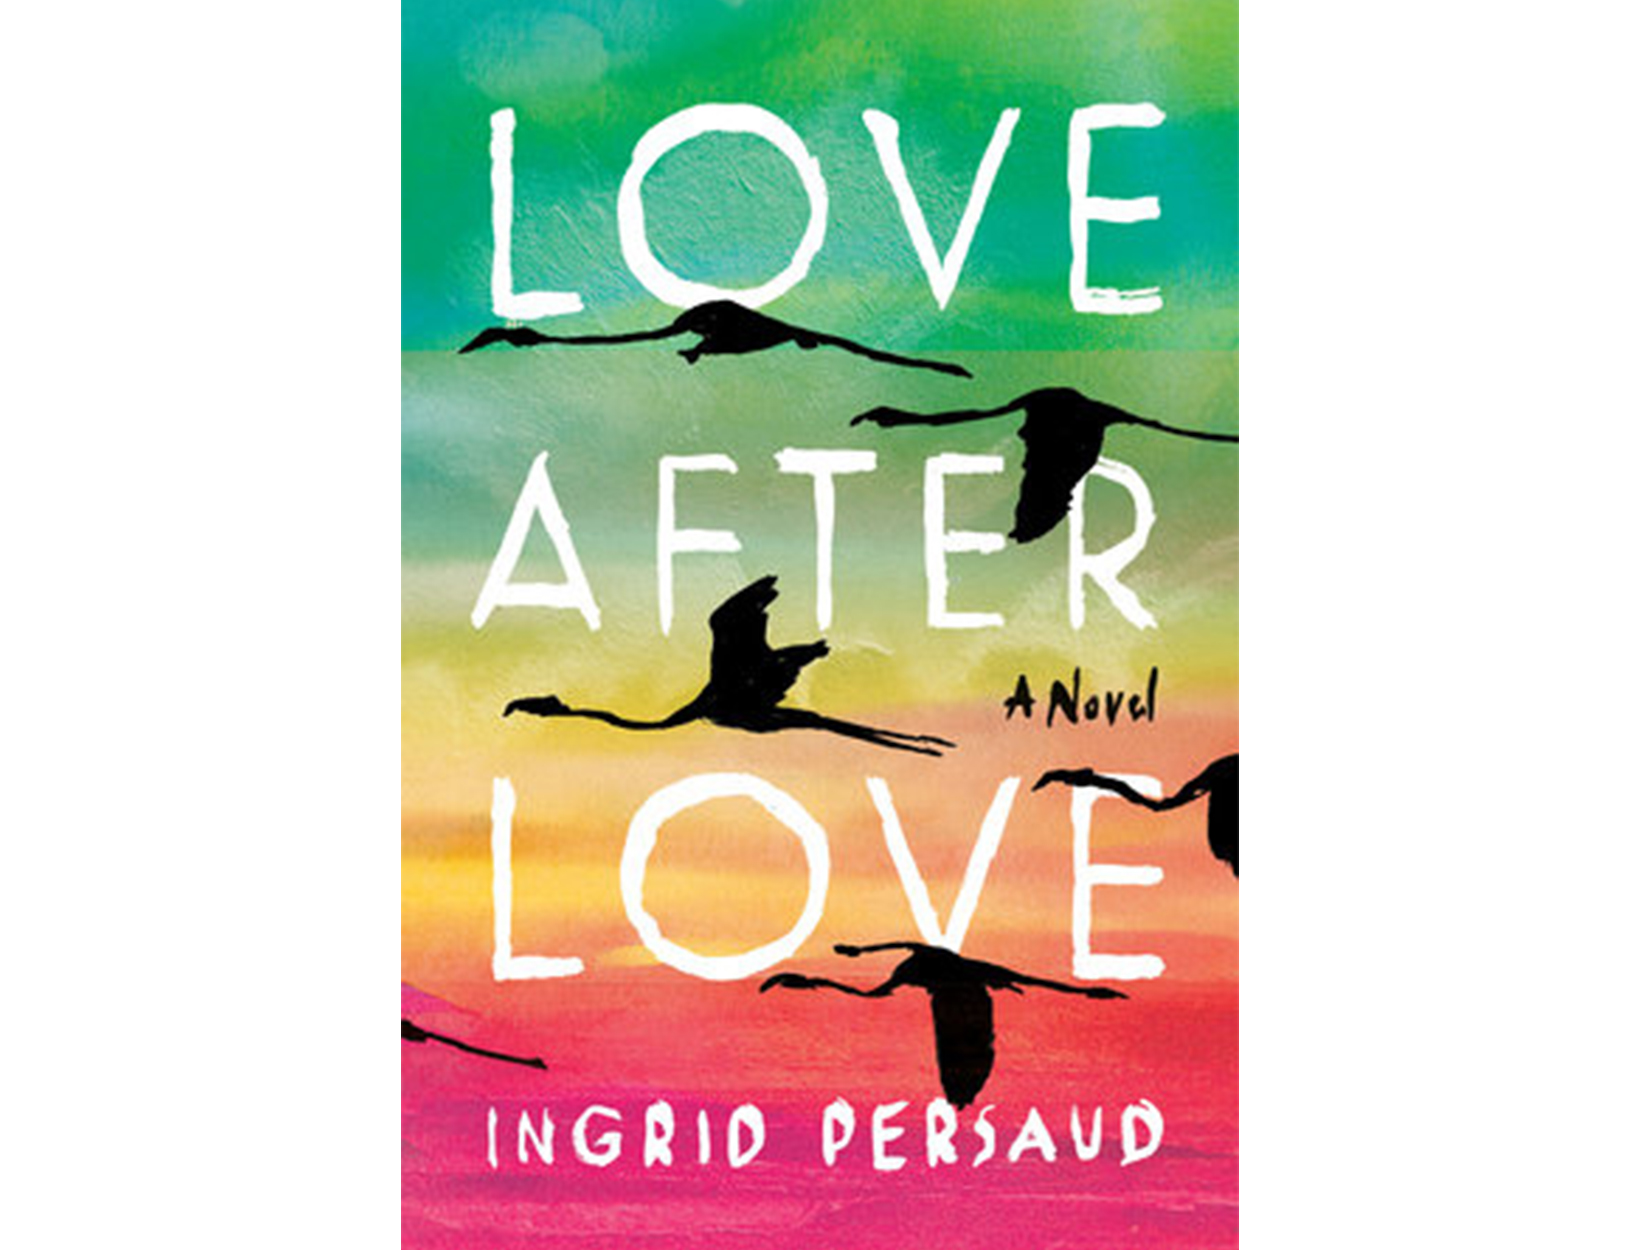 <em>Love After Love</em> by Ingrid Persaud